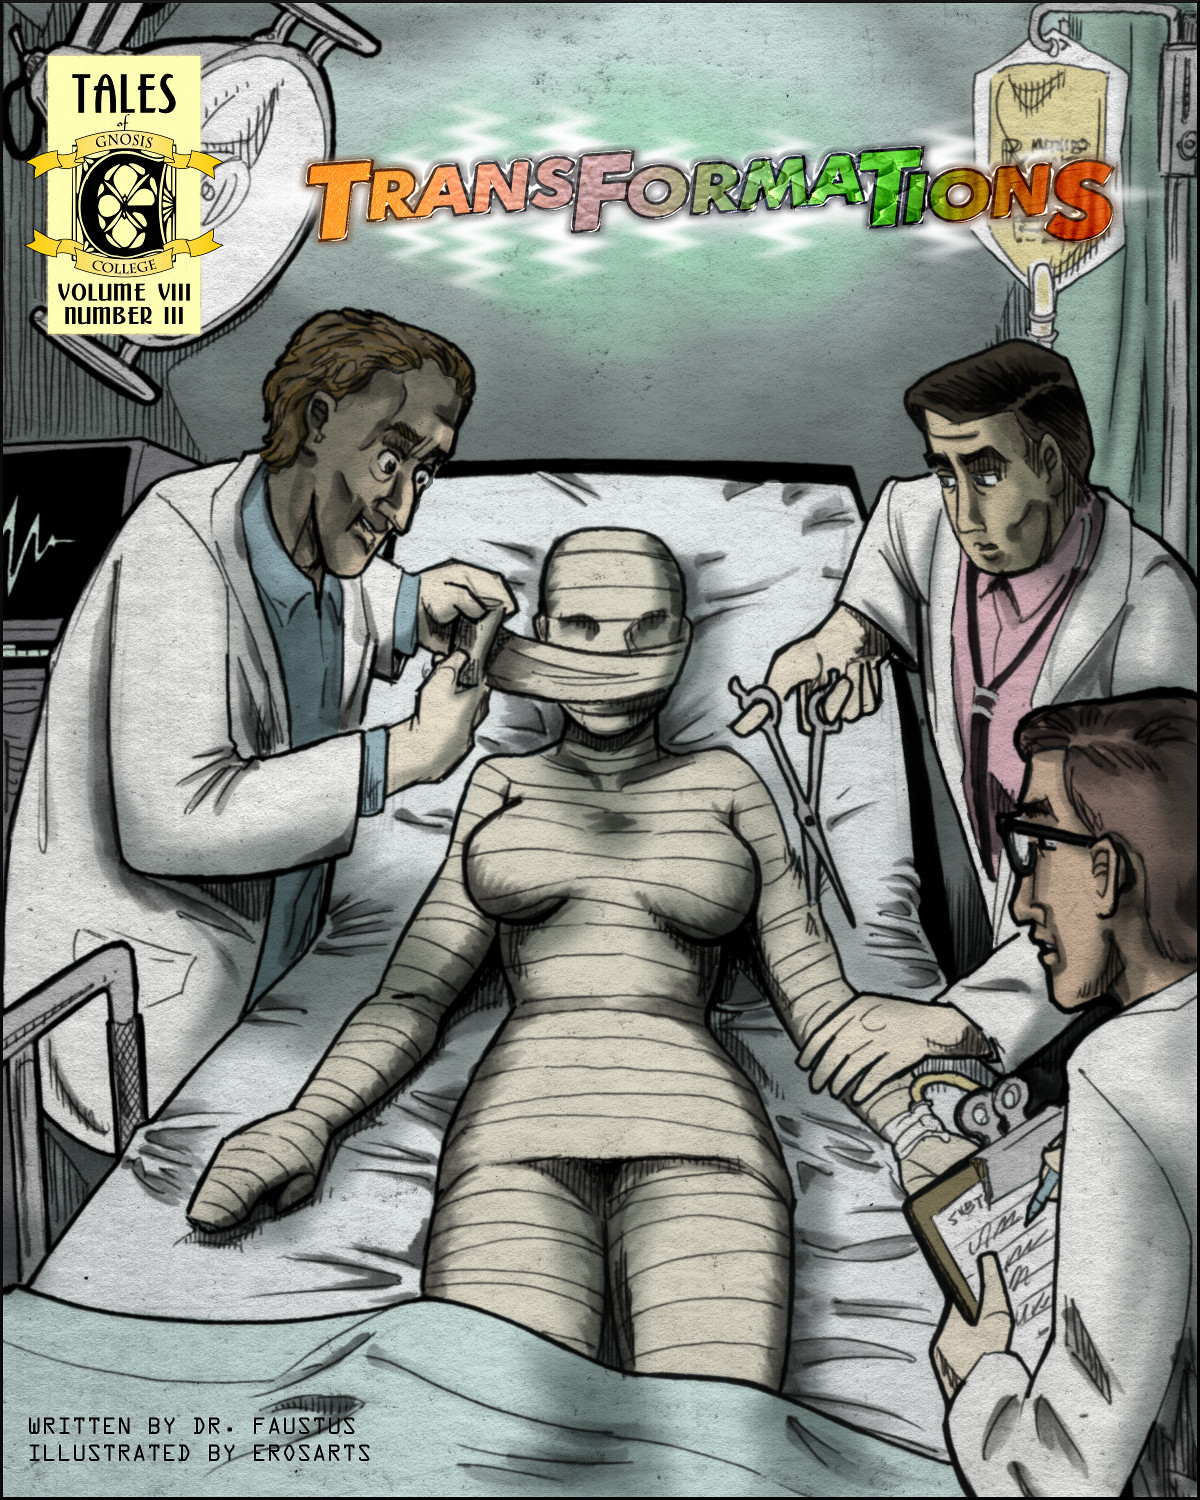 A shapely girl is transformed by mad science, but into what?